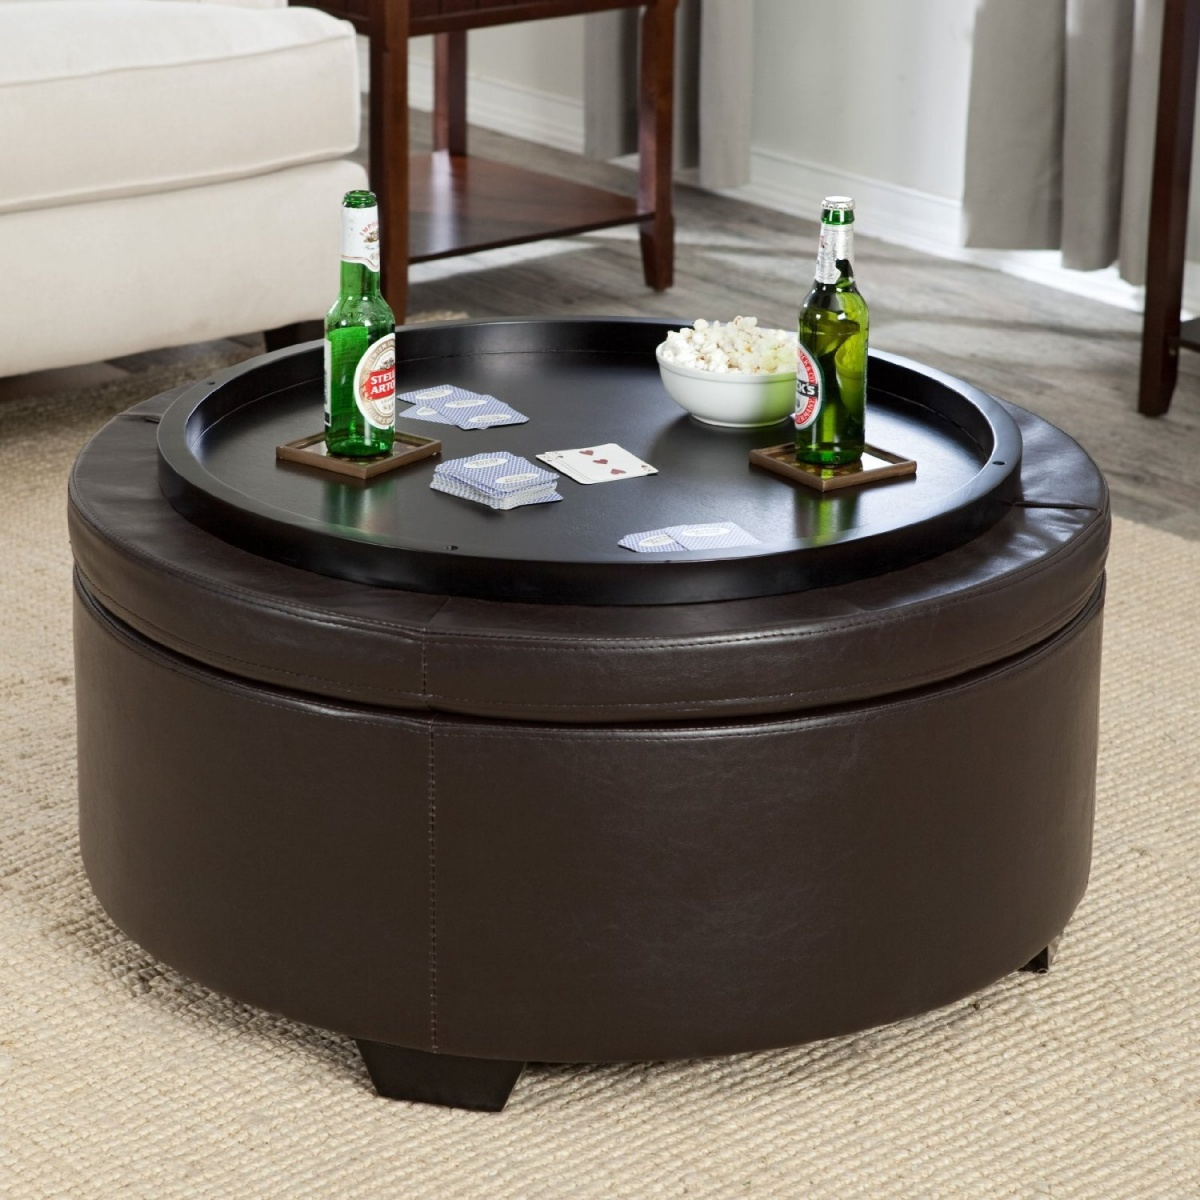 Large Ottoman Coffee Table | Cheap Round Ottomans for Sale | Ottoman with Stools Underneath